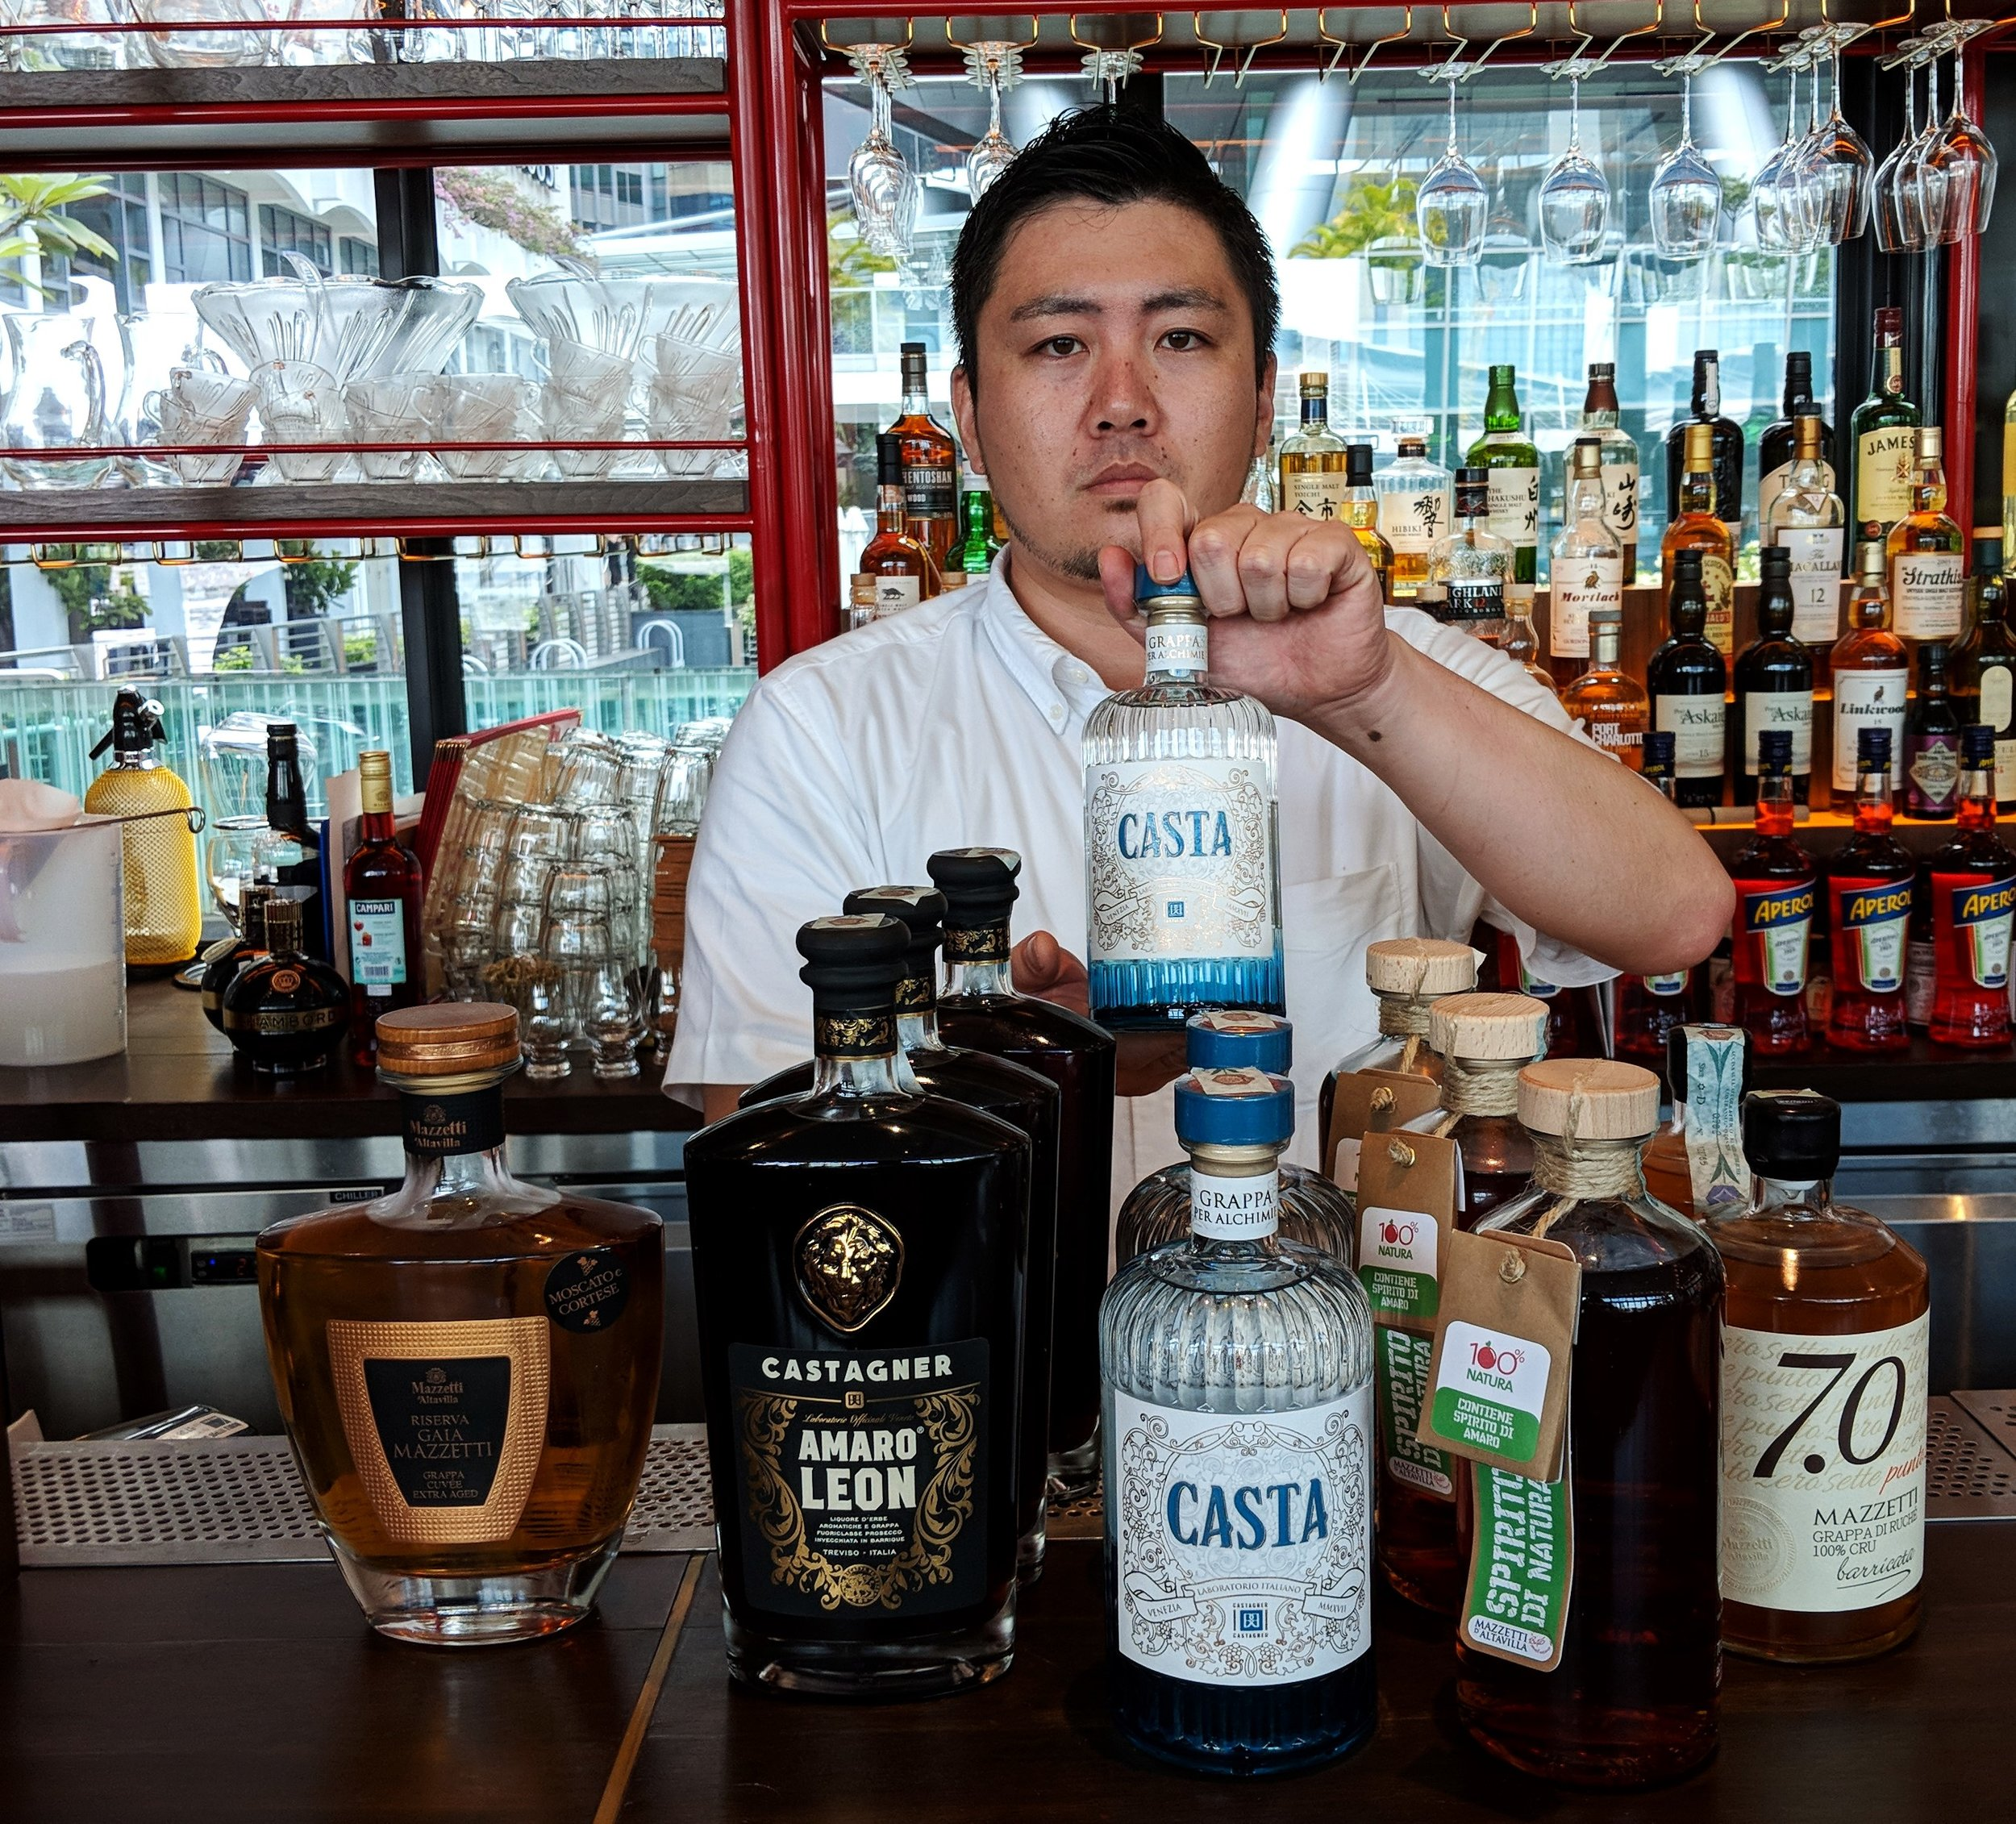 Aki of Caffe Fernet showing of Castagner and Mazzetti grappe and amari